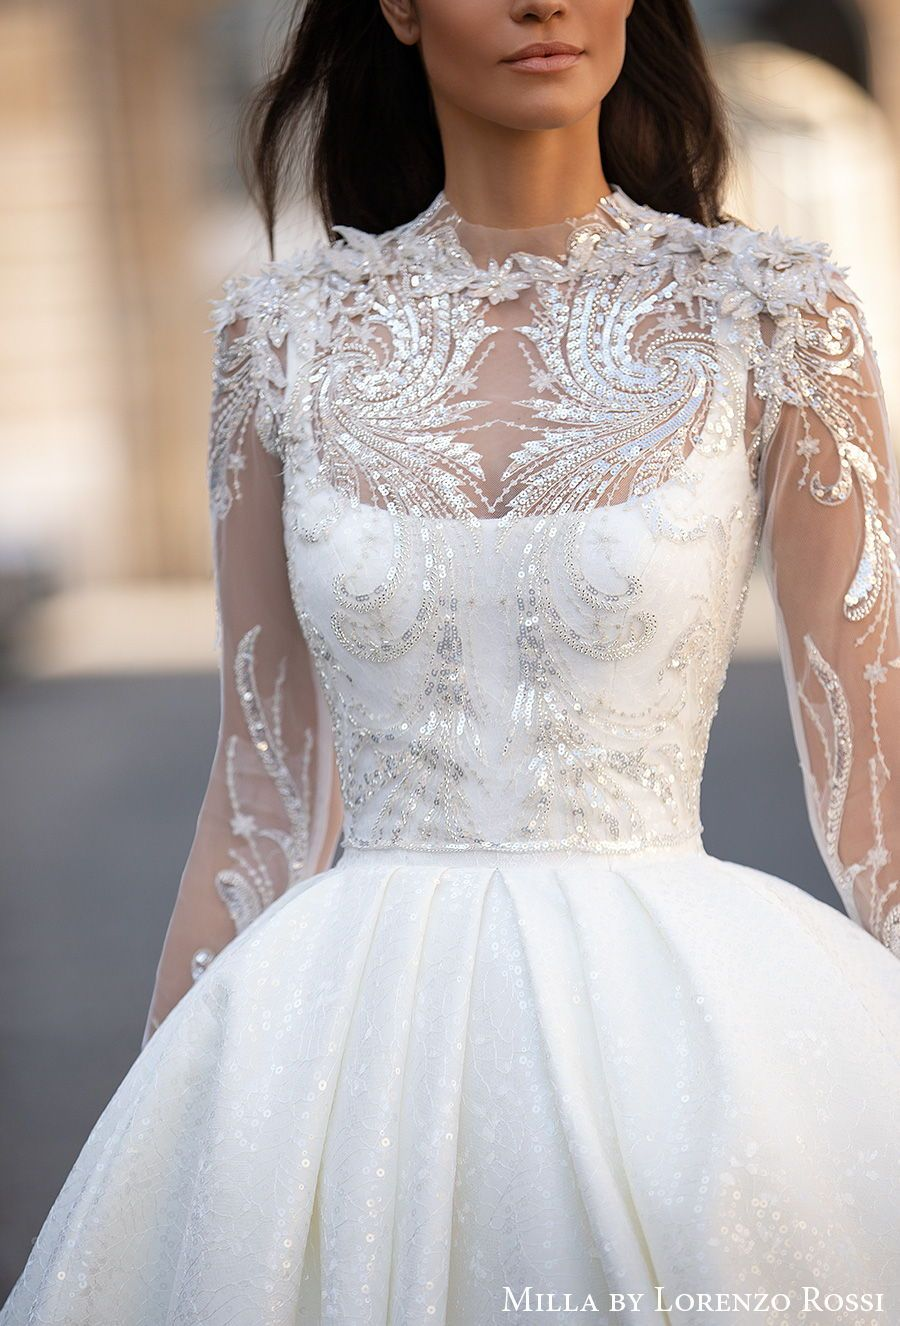 Milla By Lorenzo Rossi Wedding Dresses For Every Bride 2020 2021 Paris Bridal Collection Wedding Inspirasi Wedding Dresses Wedding Dresses Unique Wedding Dresses Vintage [ 1326 x 900 Pixel ]